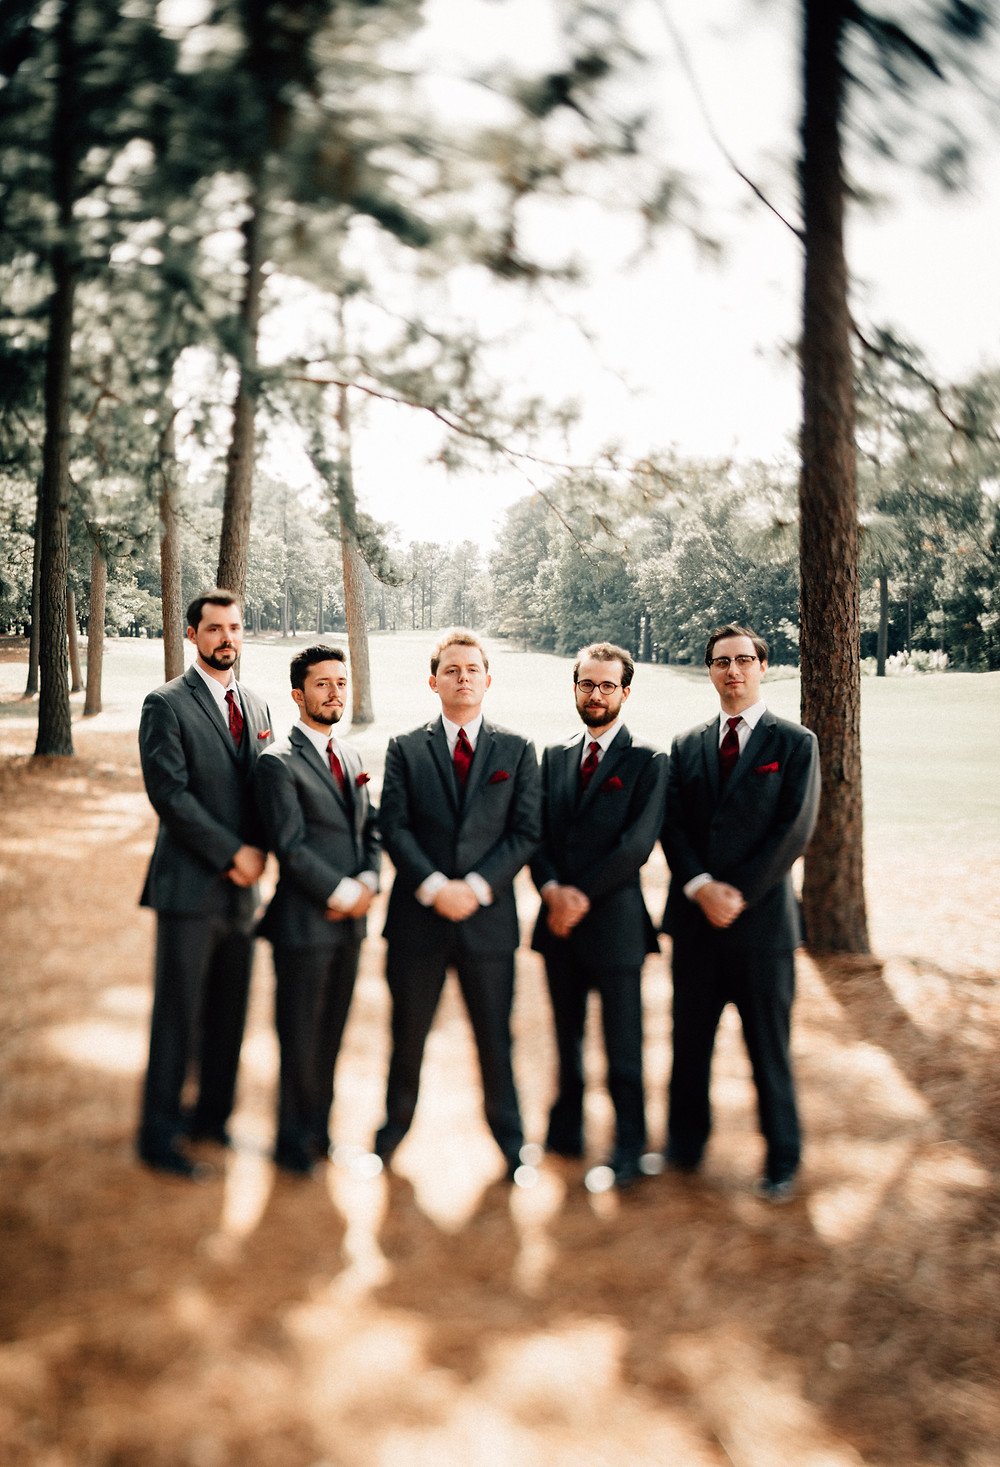 Groomsmen serious pictures